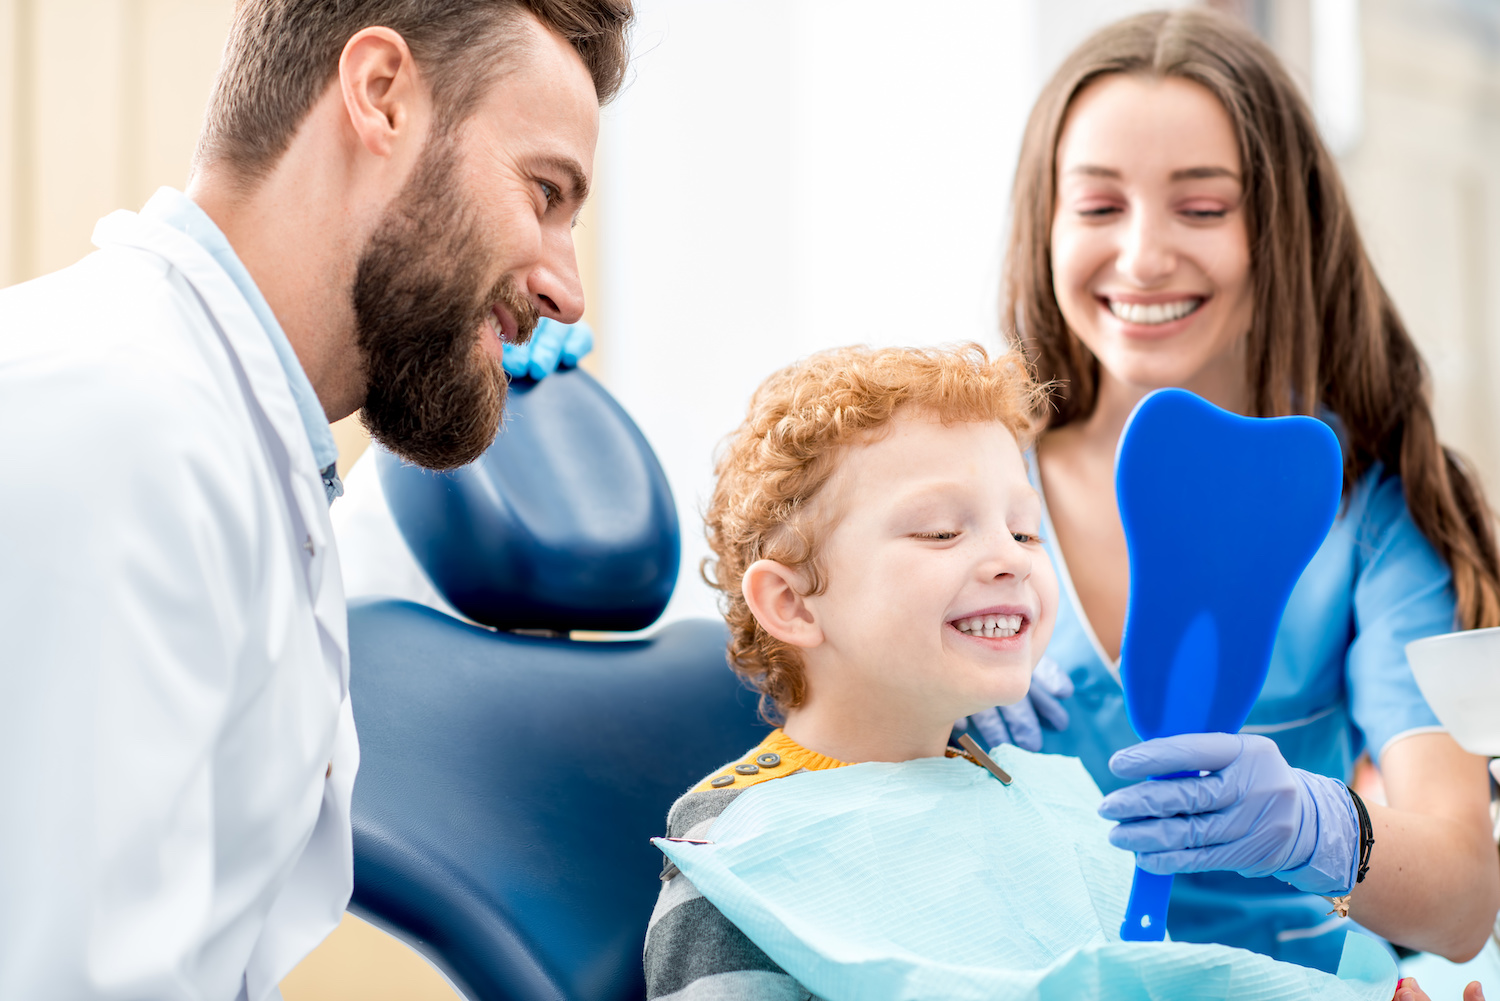 Foods Your Child Should Avoid for Healthy Teeth